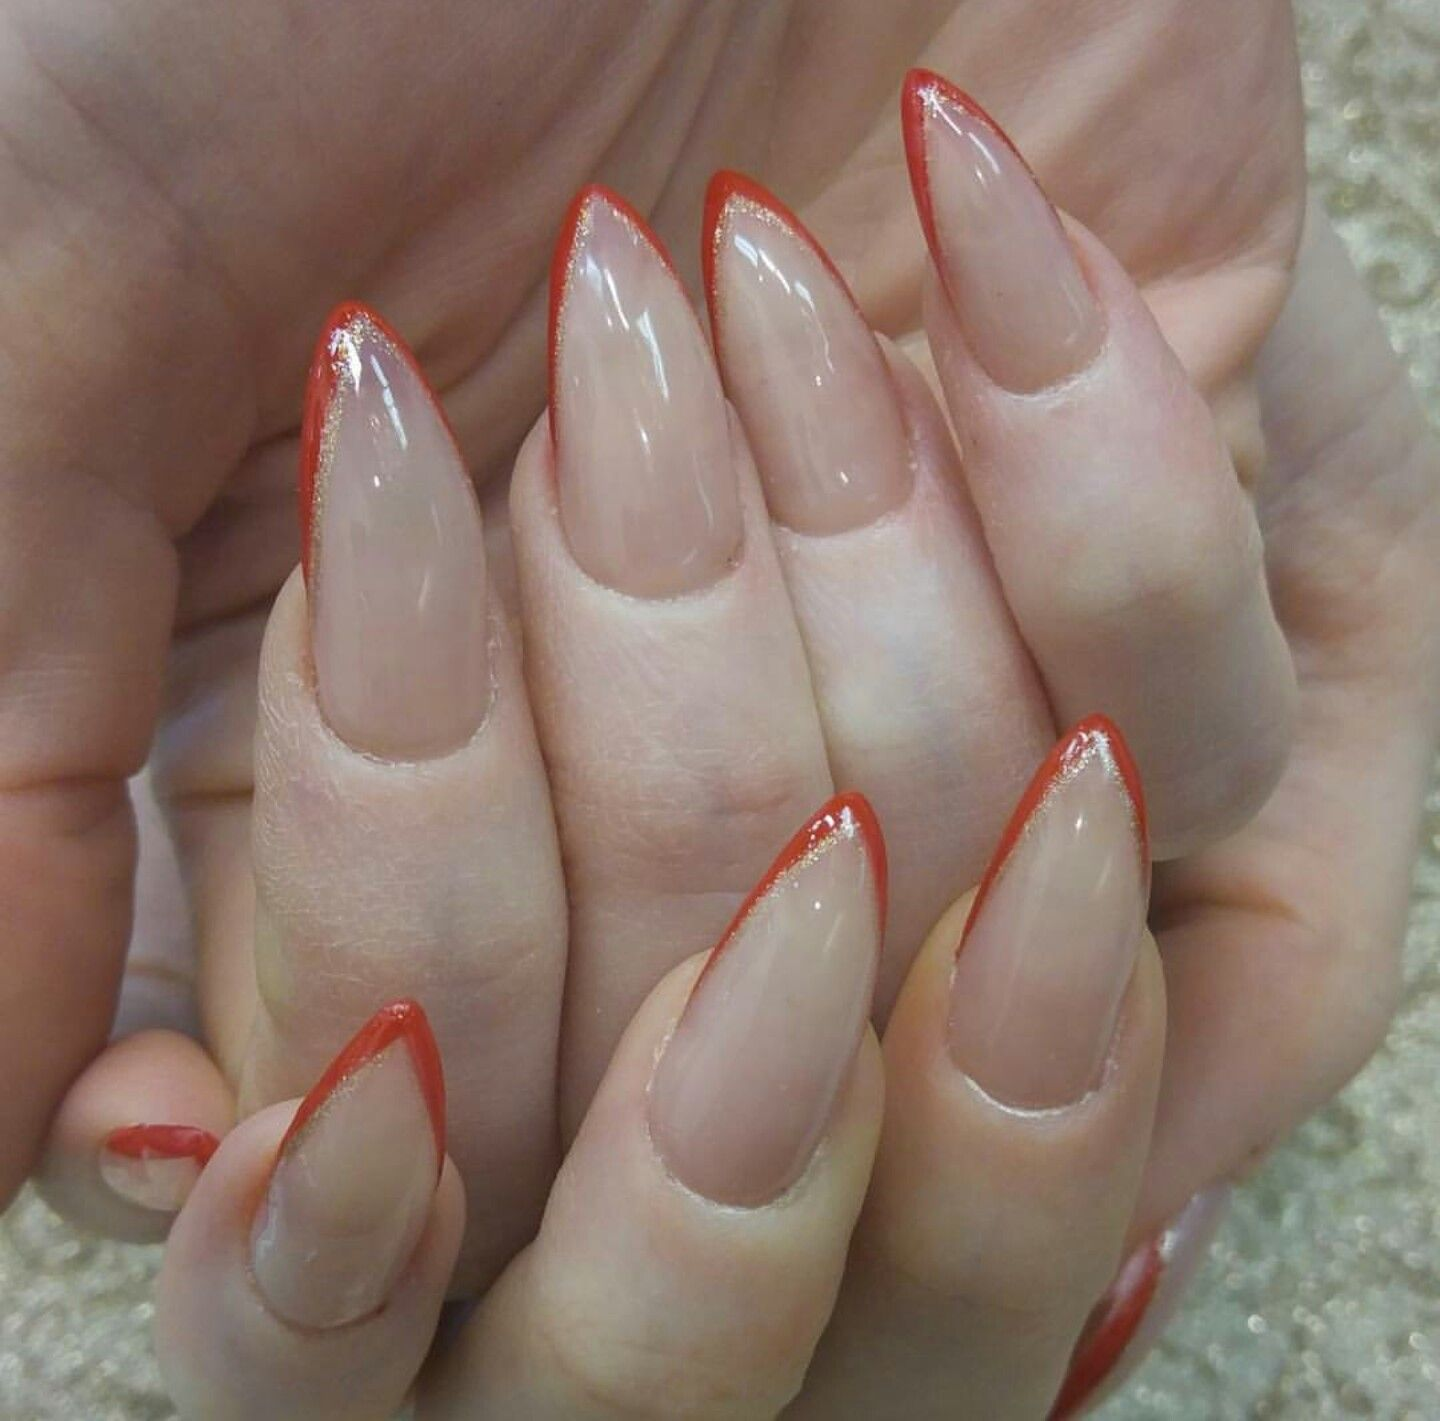 Nail art nude orange tip extravagant design | Nails | Pinterest ...